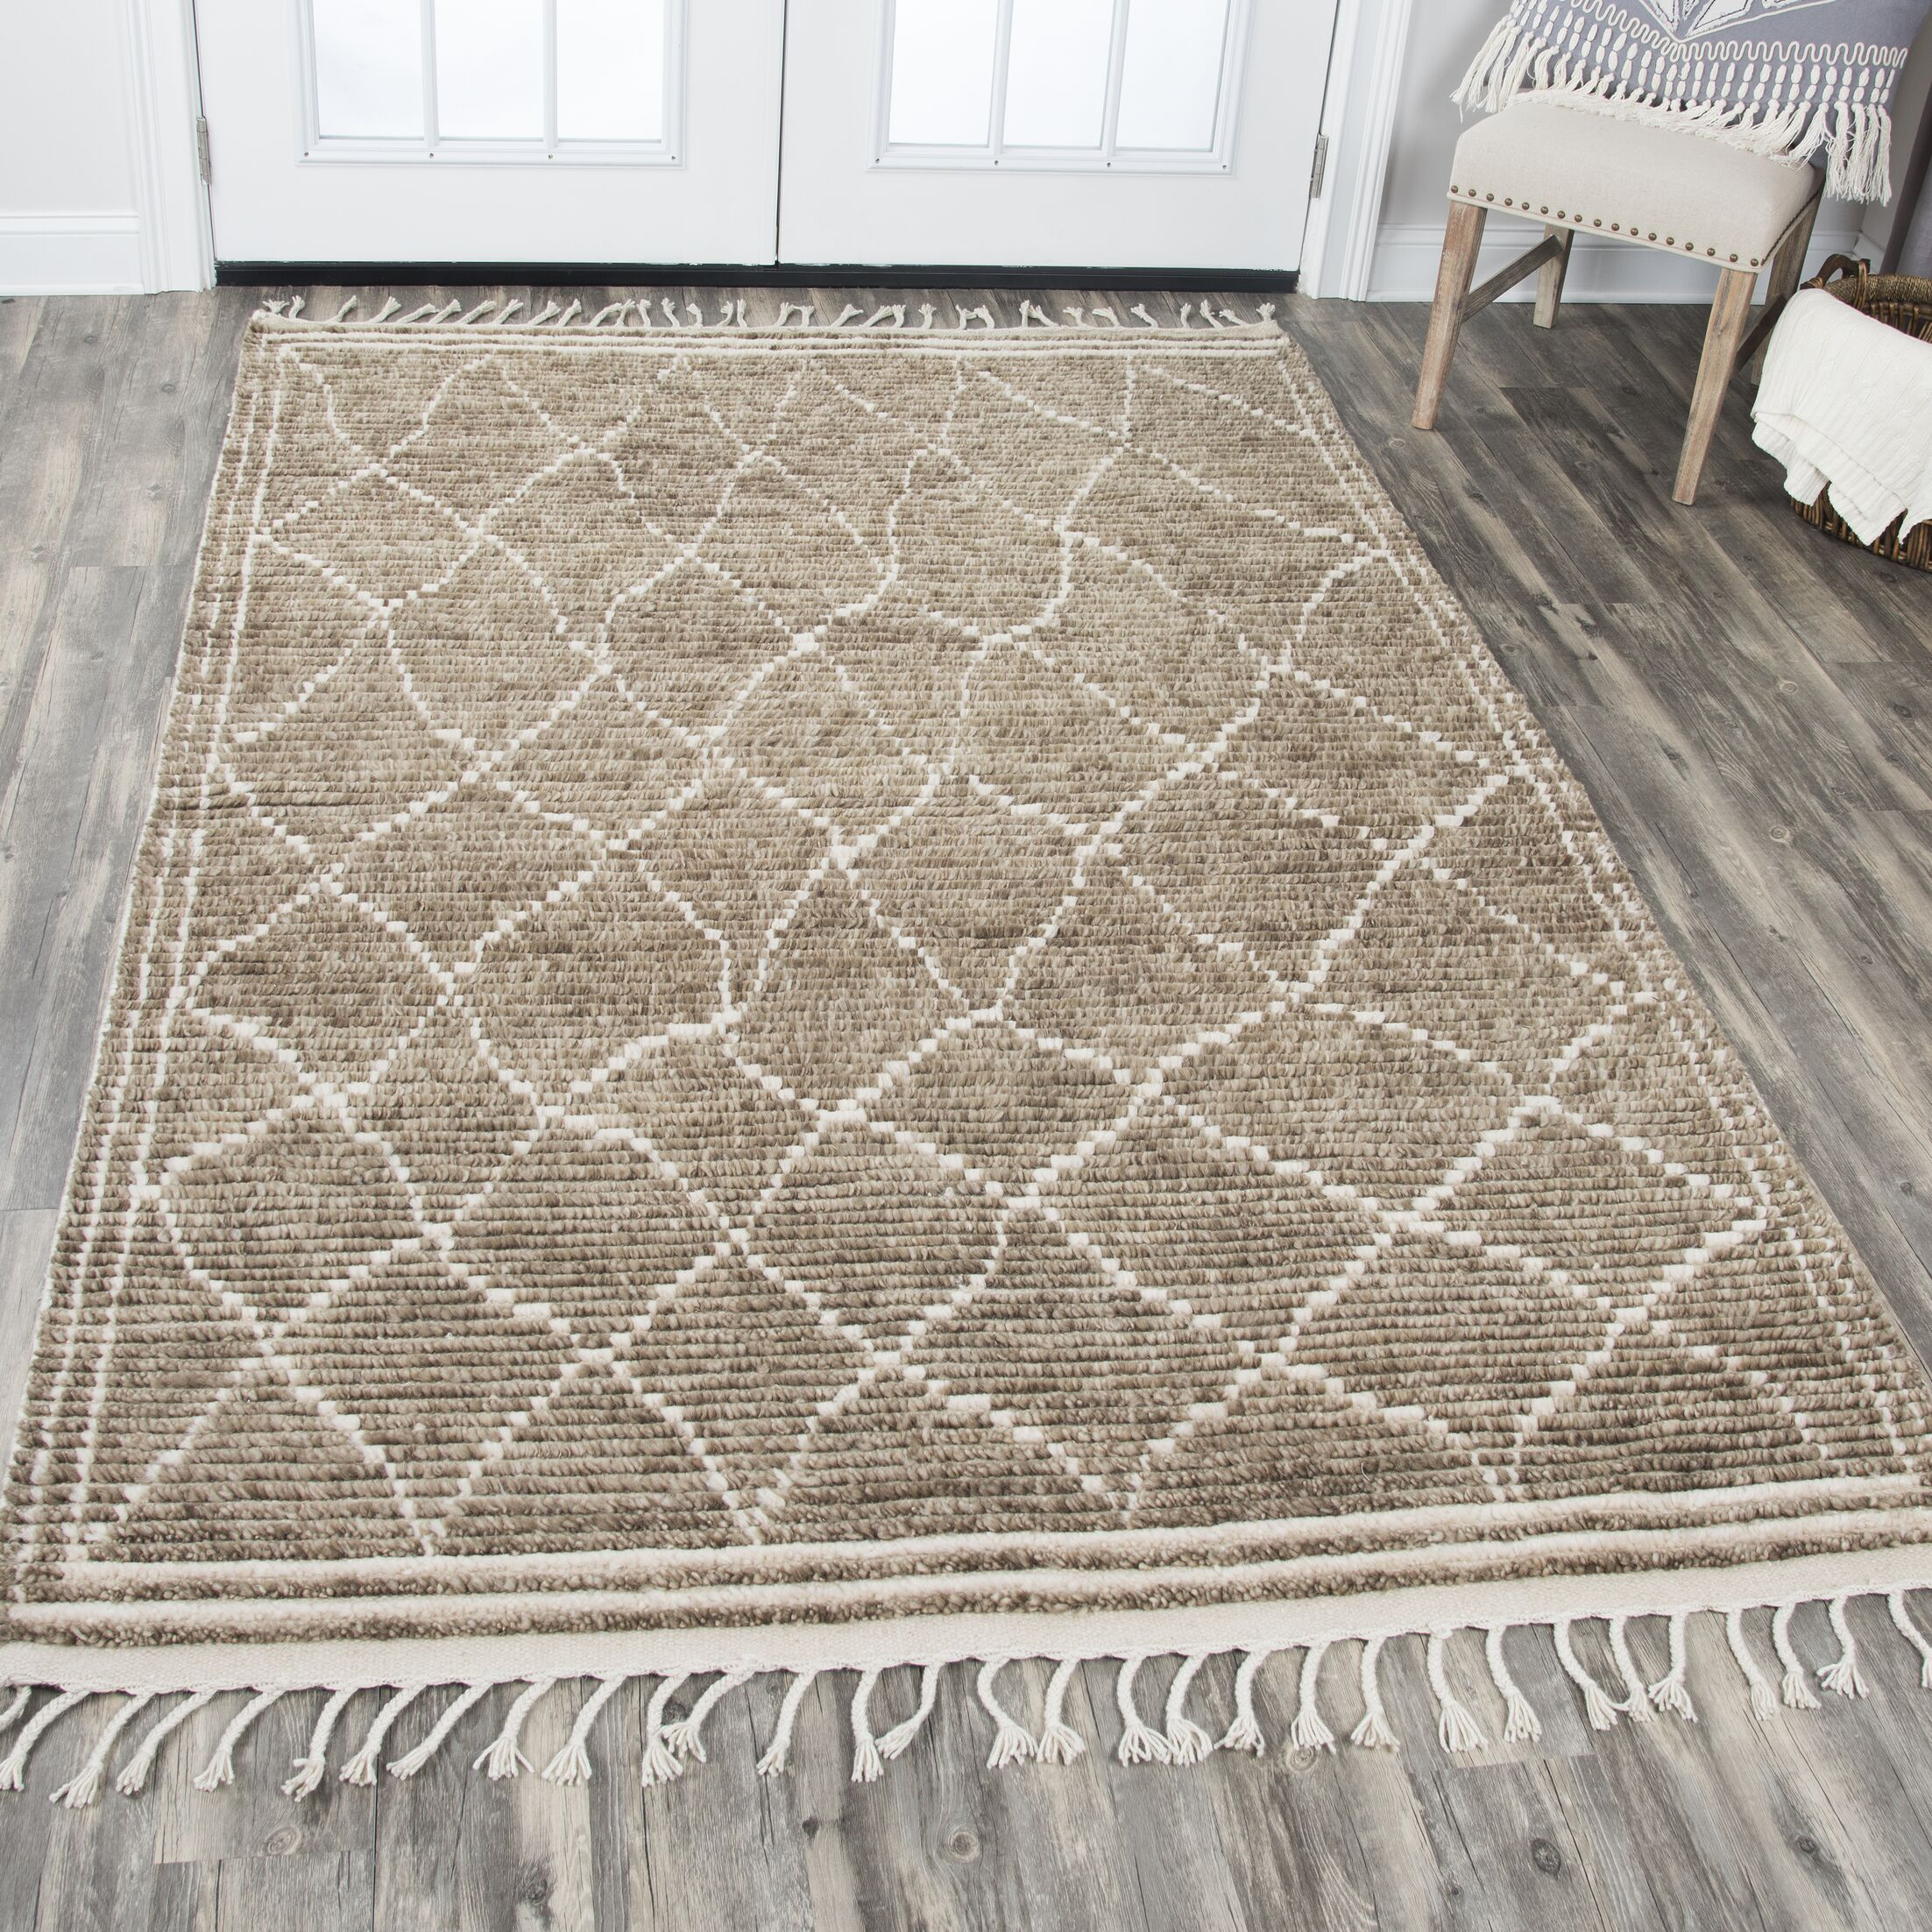 Doleman Hand-Knotted Wool Brown Area Rug Rug Size: Rectangle 8'9